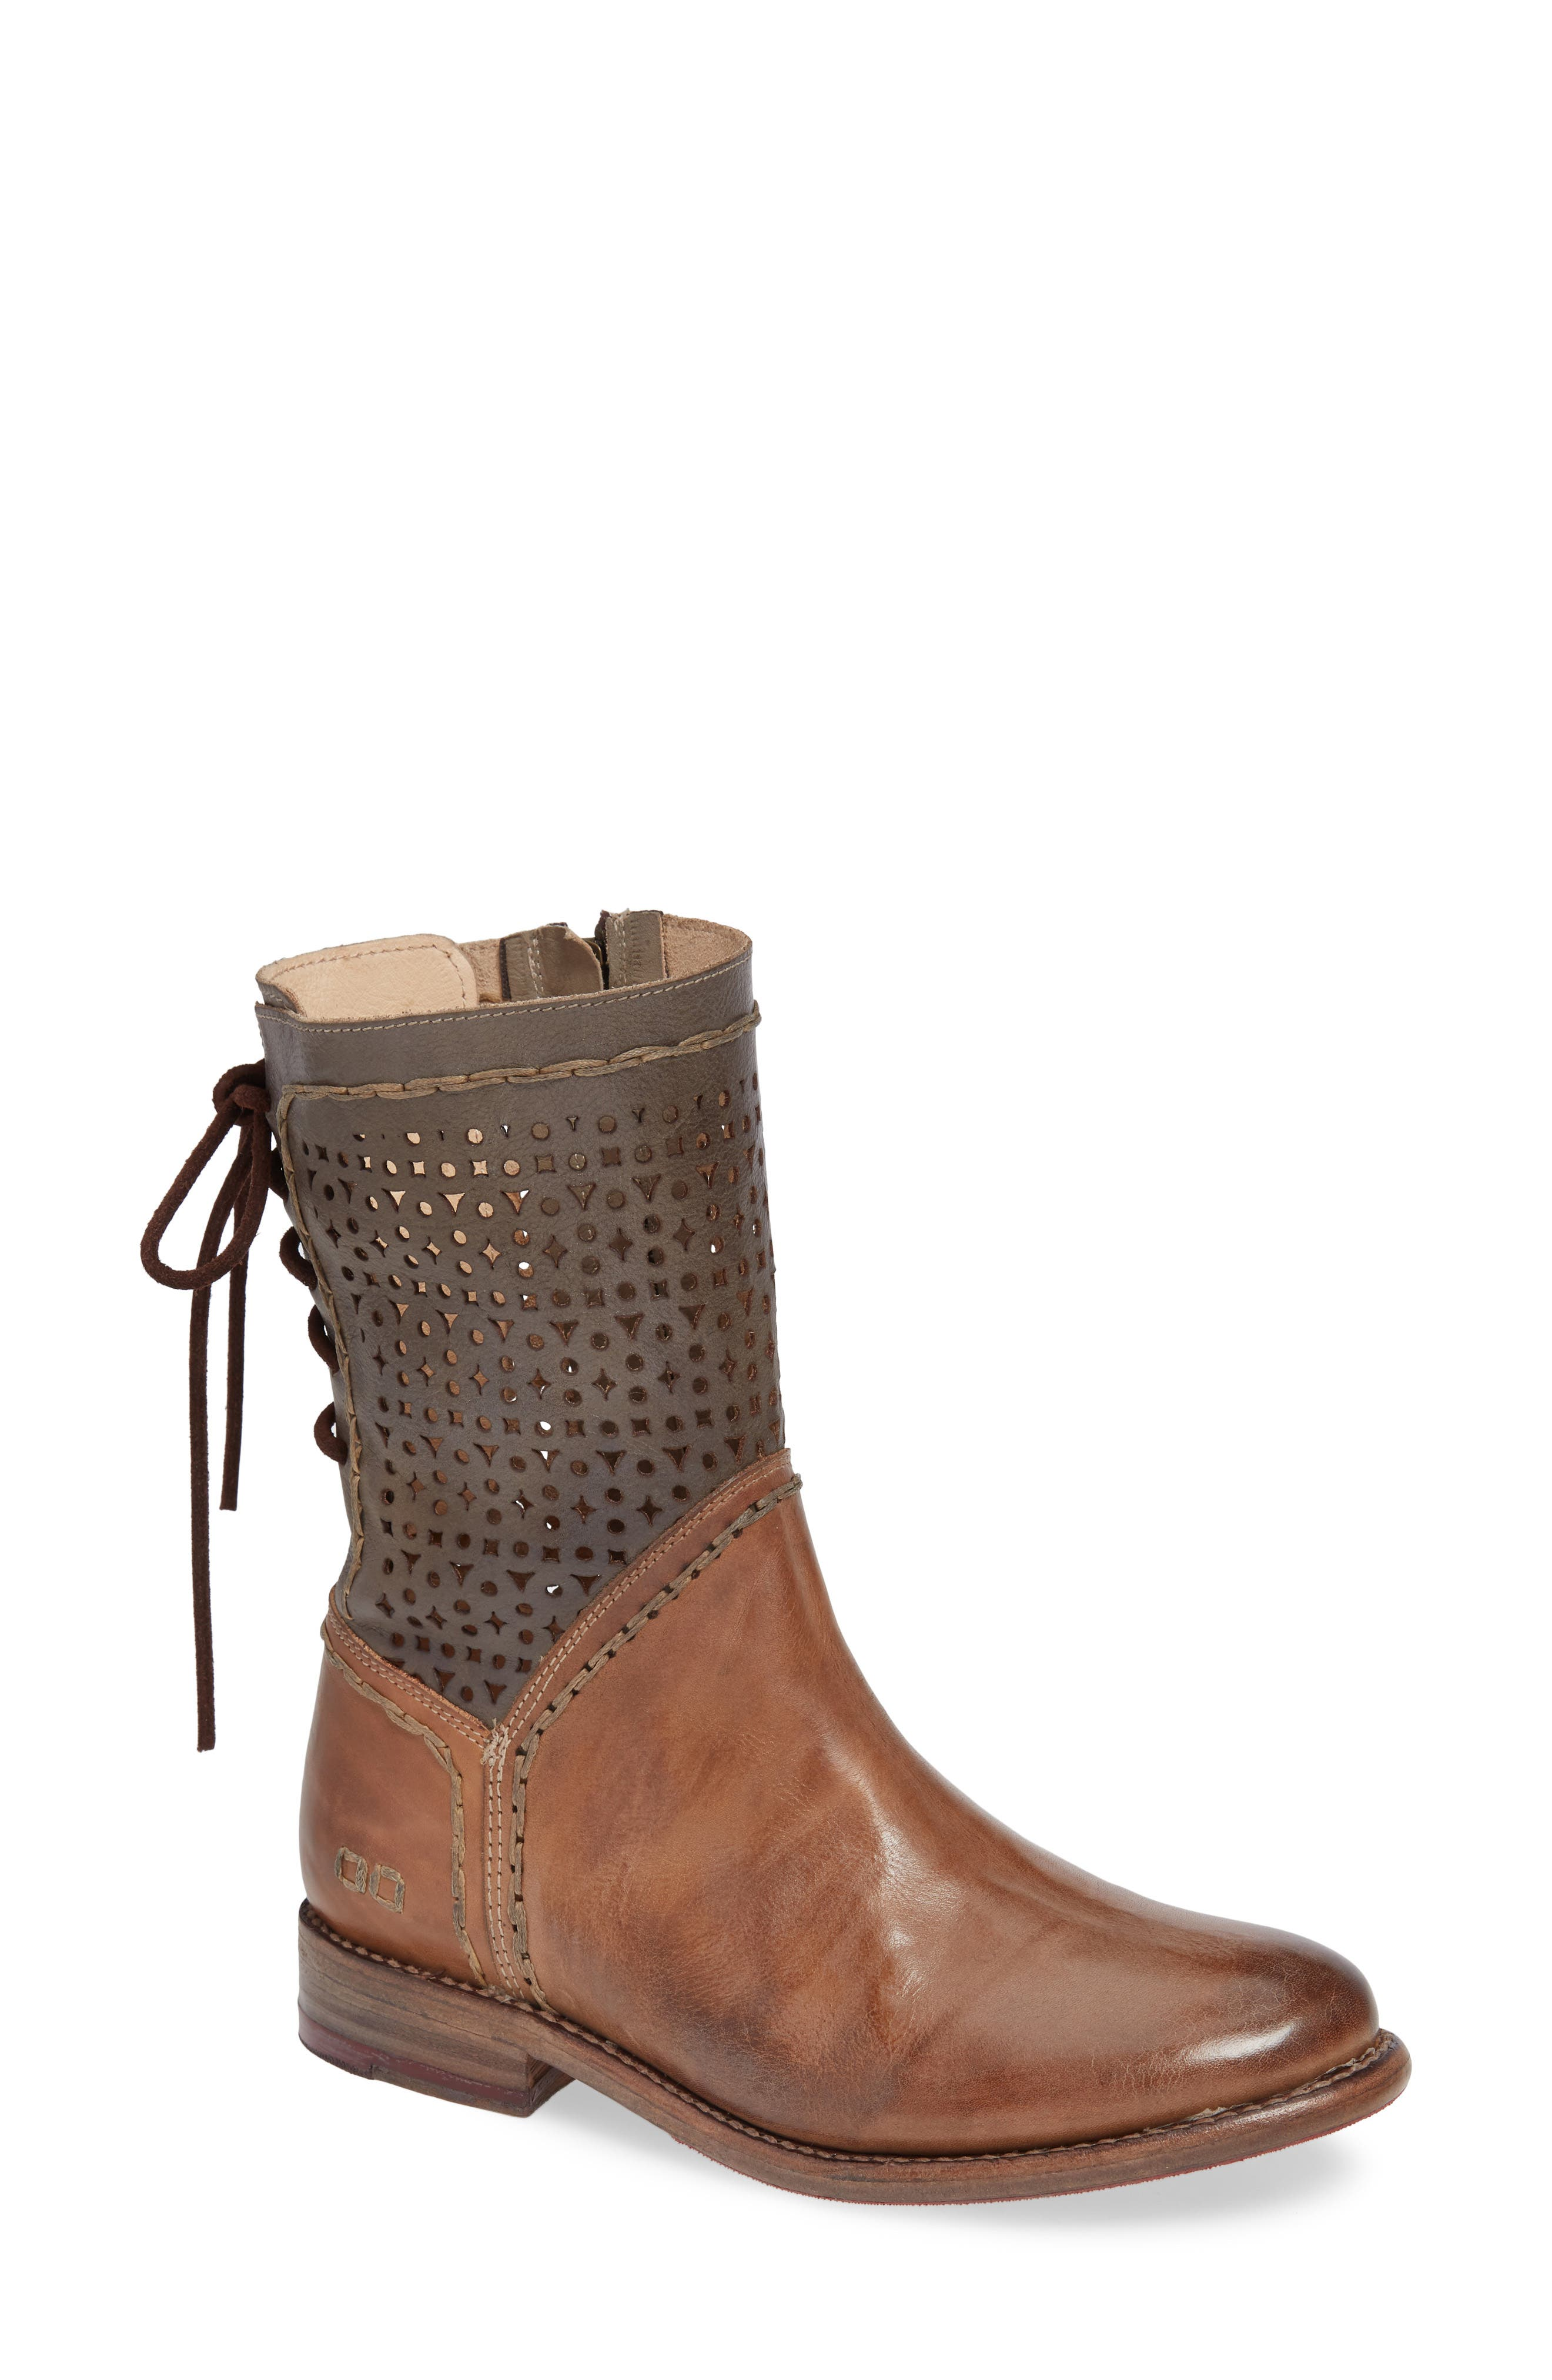 Bed Stu Cheshire Perforated Shaft Boot- Brown